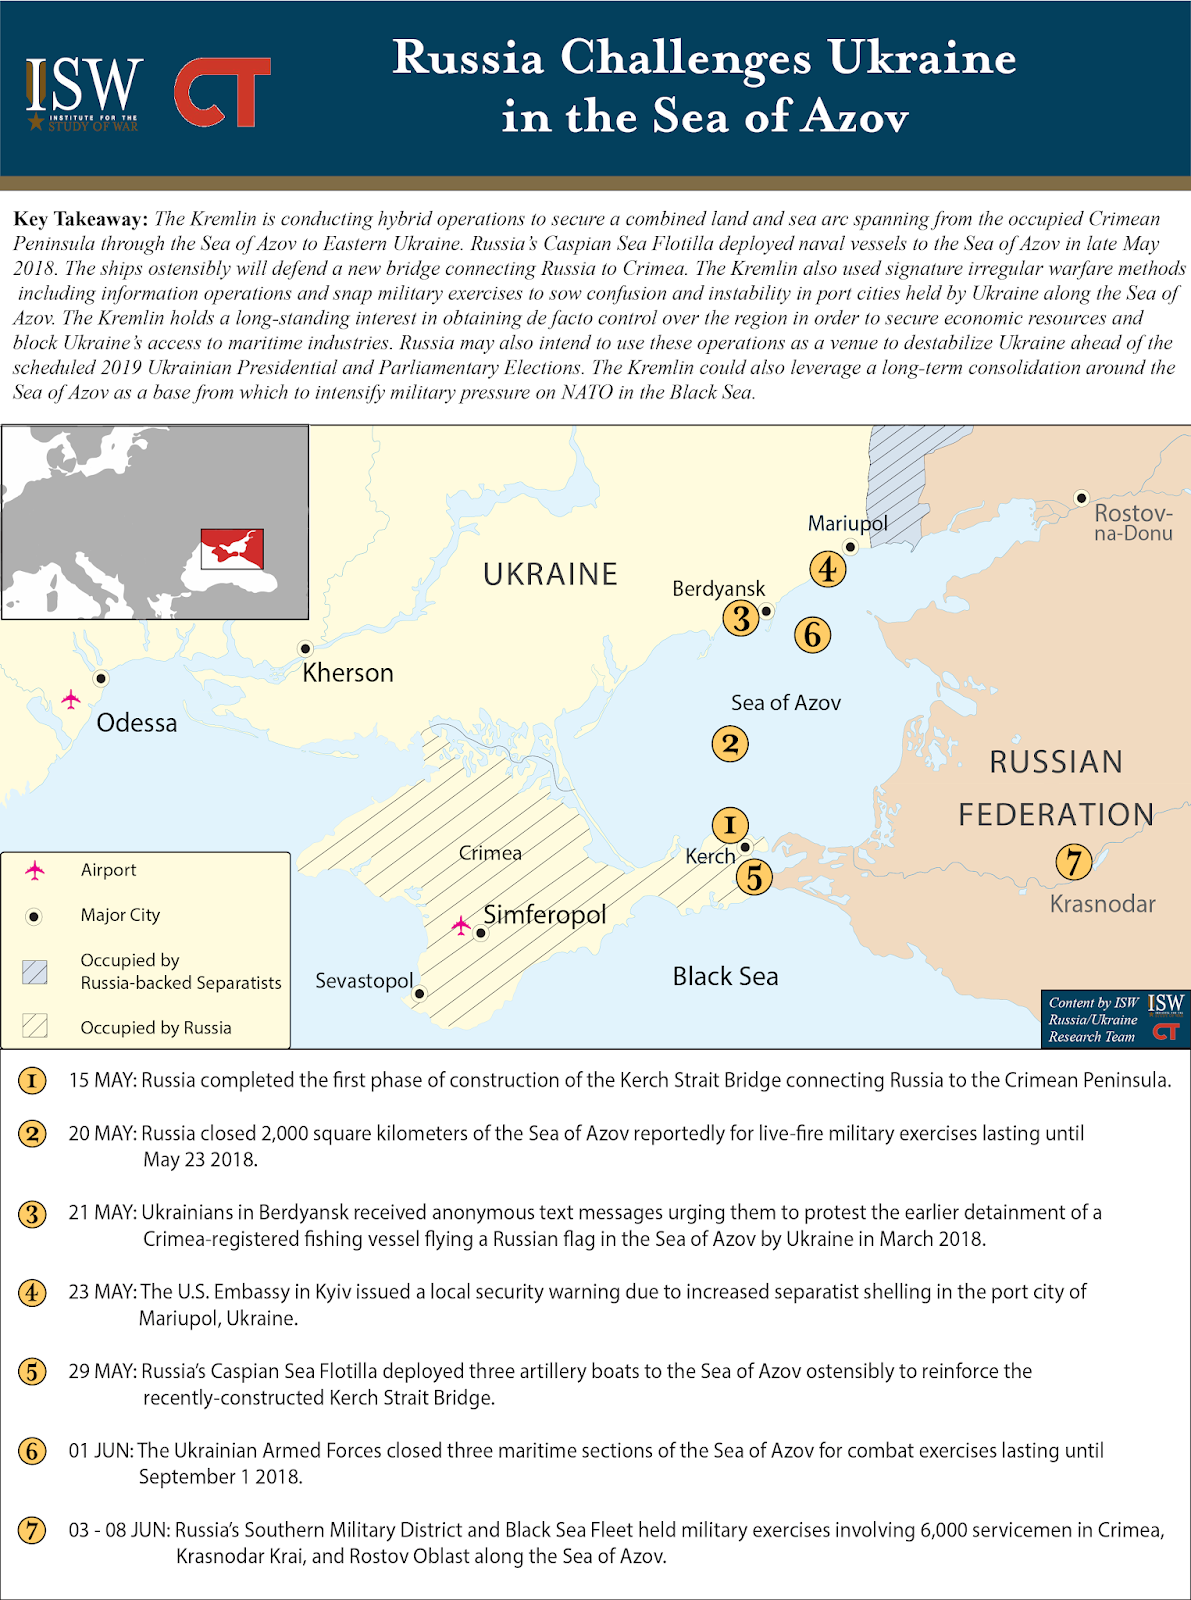 the kremlin could also leverage a long term consolidation around the sea of azov as a base from which to intensify military pressure on nato in the black